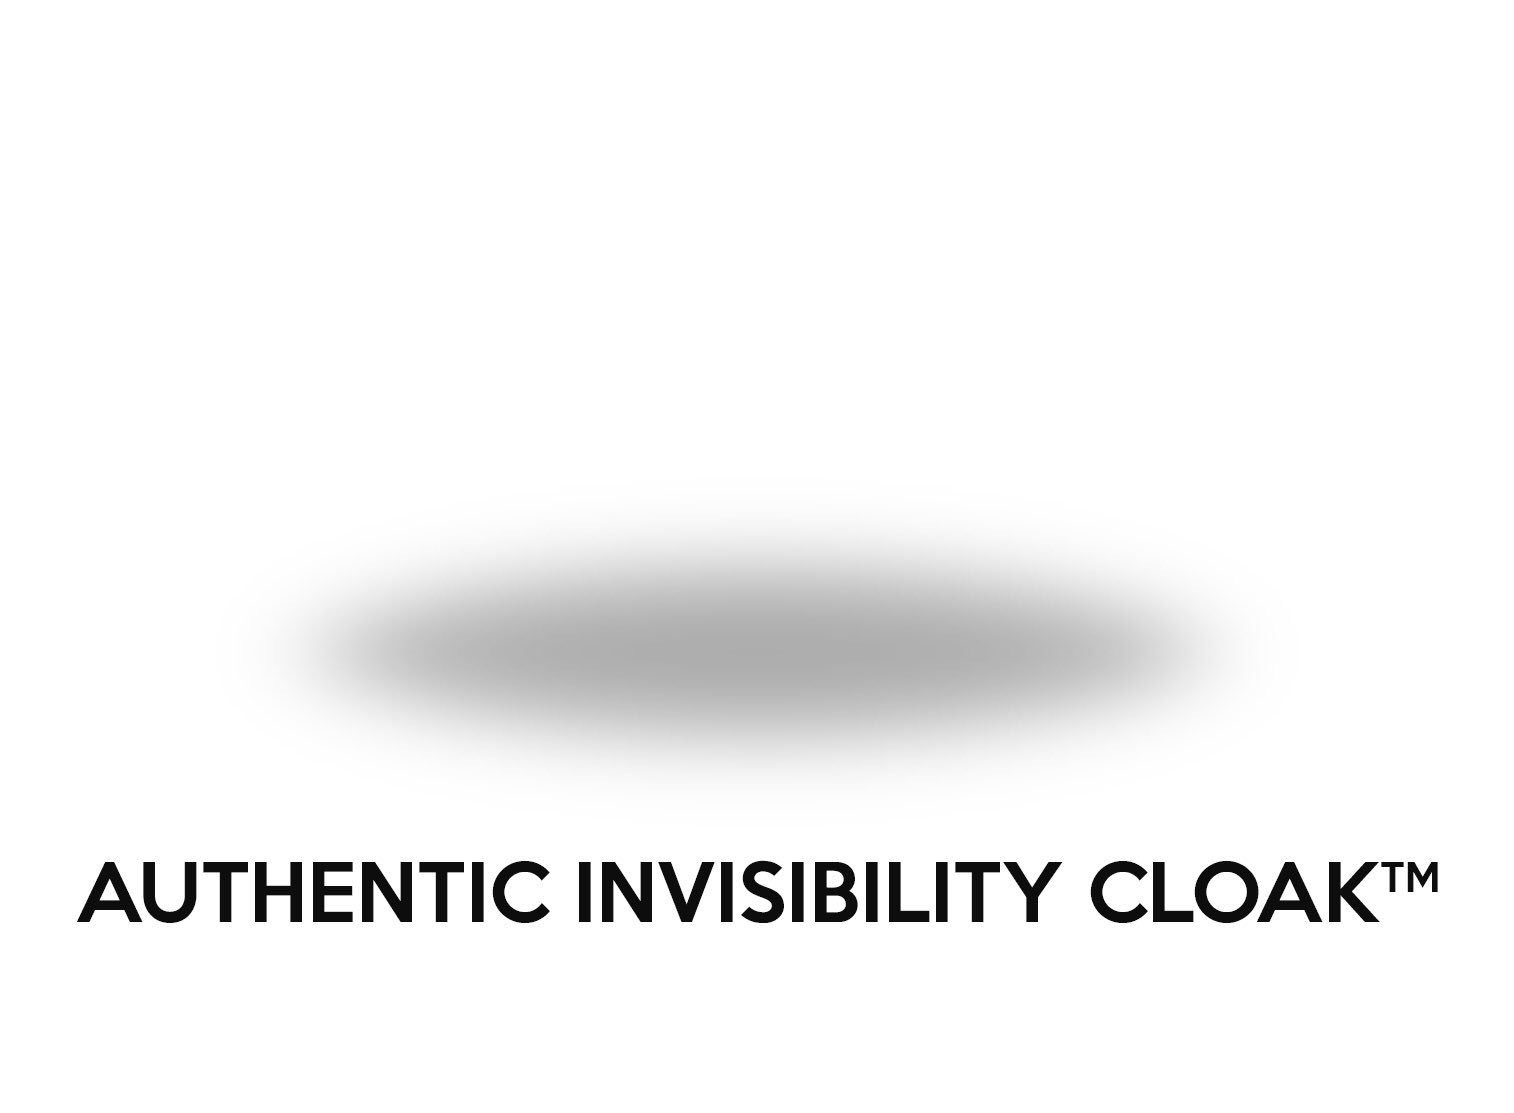 Check out this never-before-seen addition to our Online Shop... the Invisibility Cloak! https://t.co/9VcReuiAzZ https://t.co/jlPtHnJYch